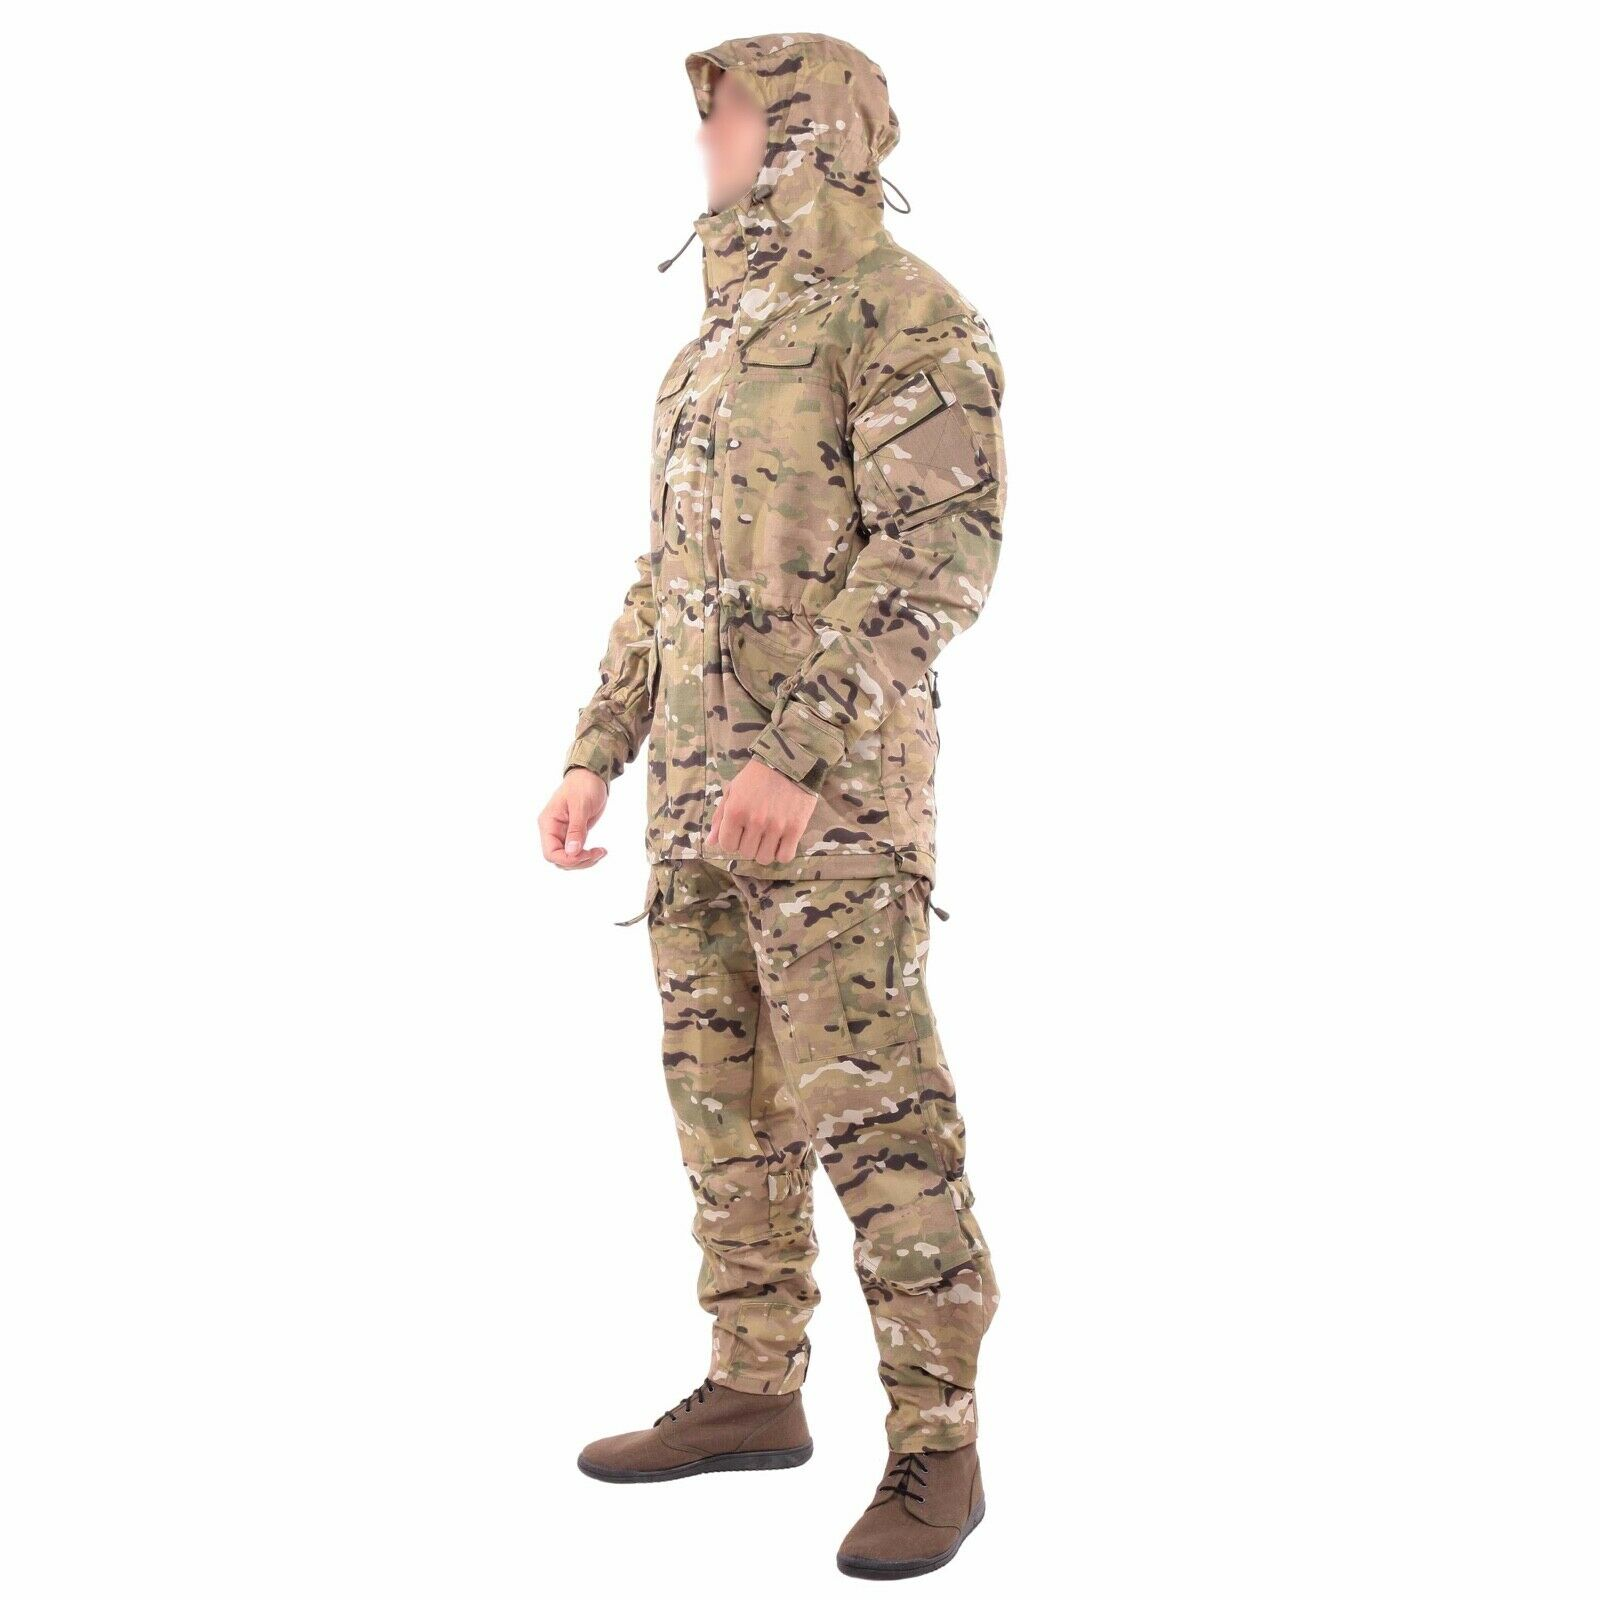 Gorka-5   KE Tactical   Hiking Hunting Tactical Suit with Elbow and Knee Pads  is discounted